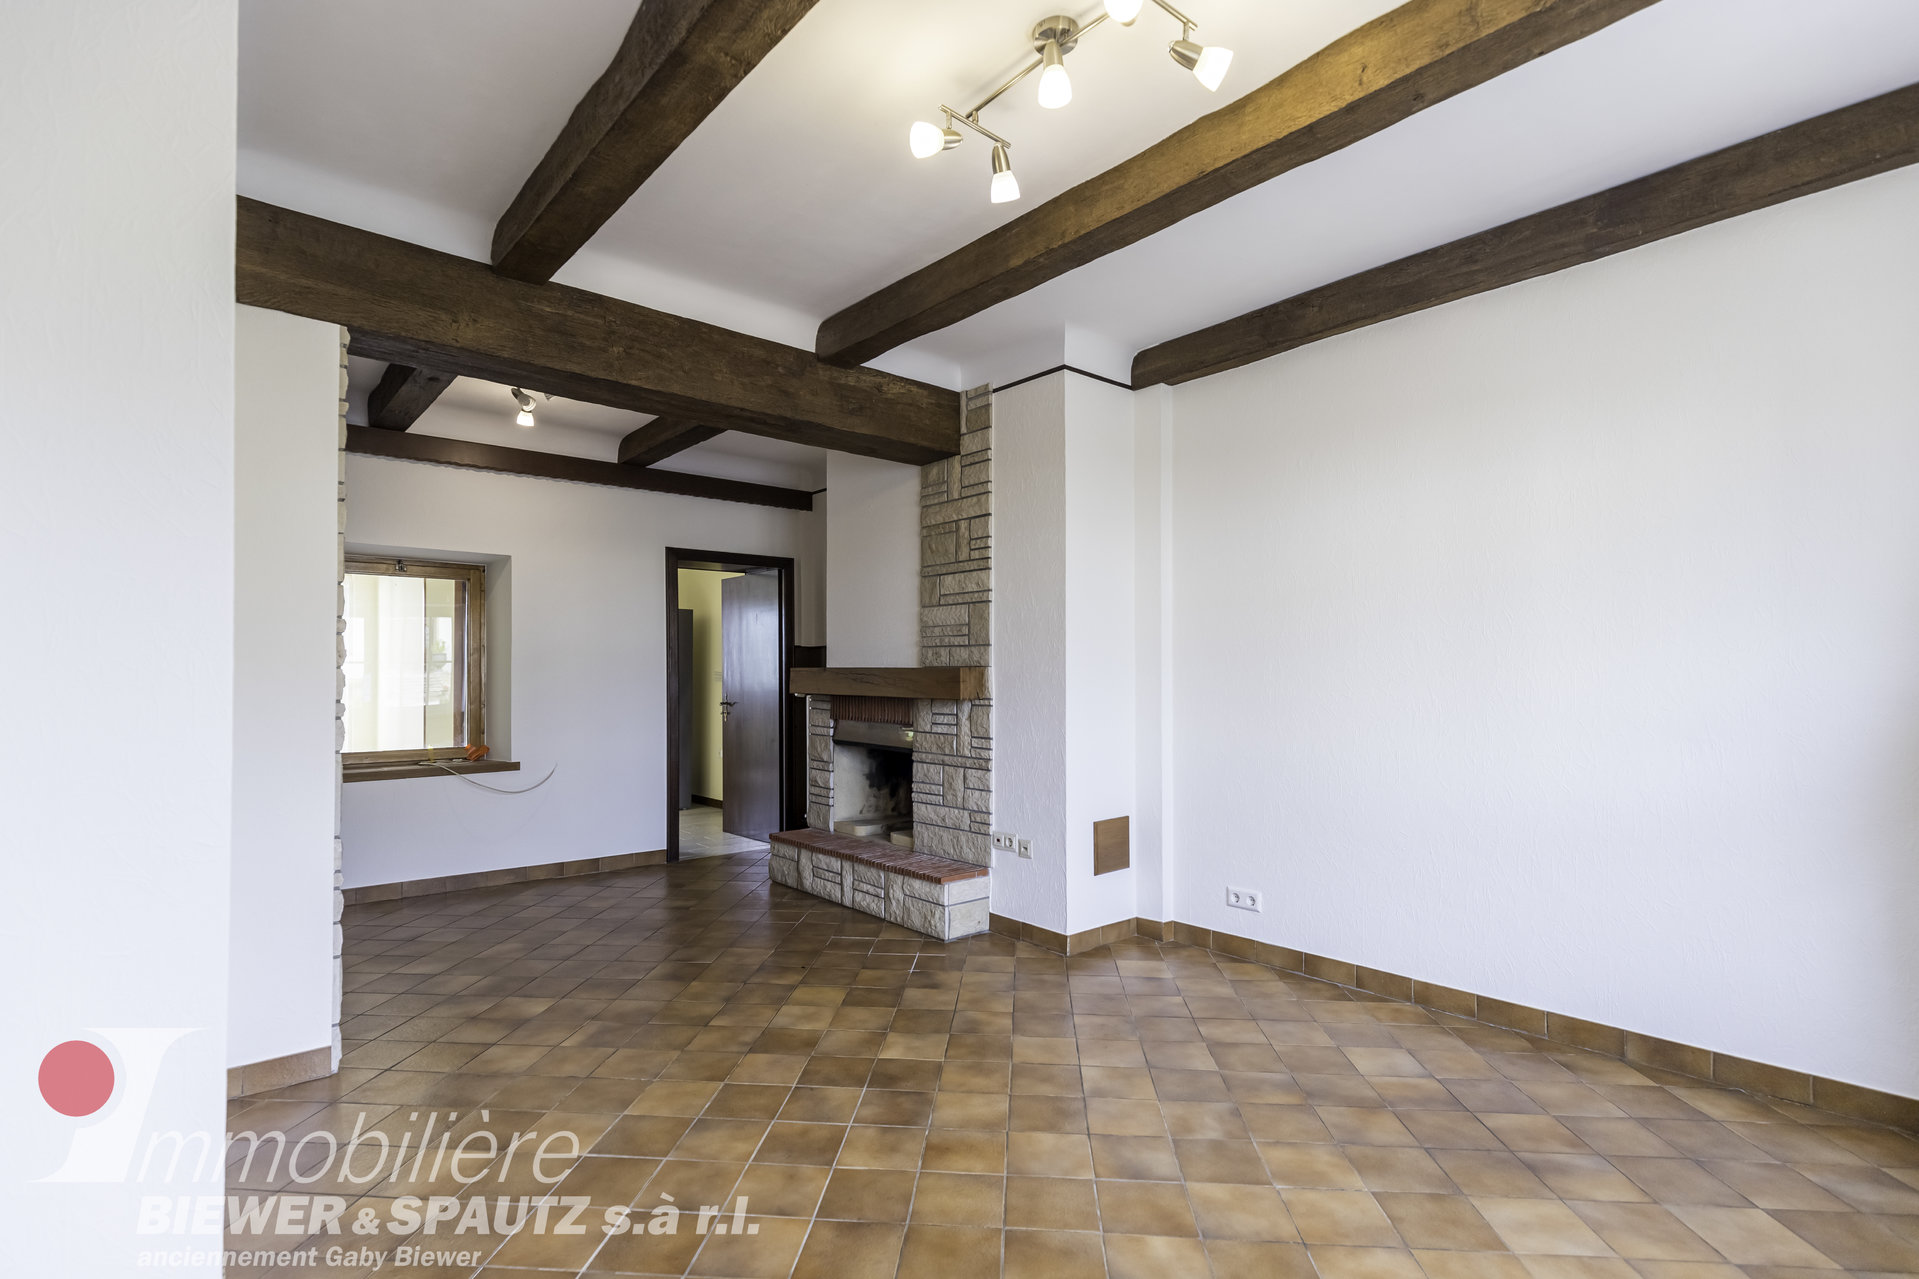 FOR RENT - house with 3 bedrooms in Olingen